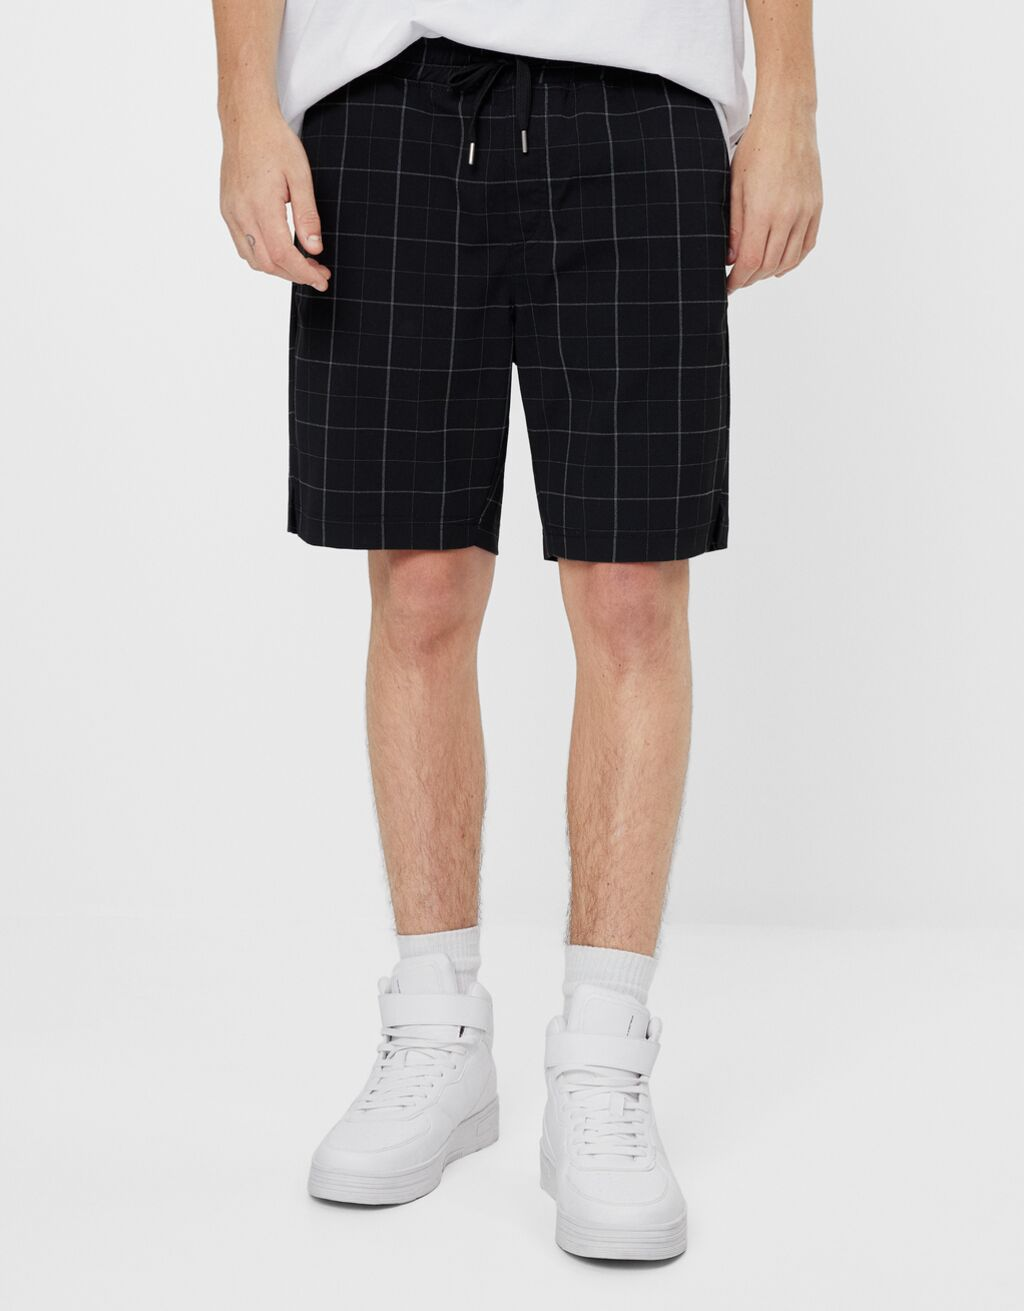 Bermuda jogging shorts